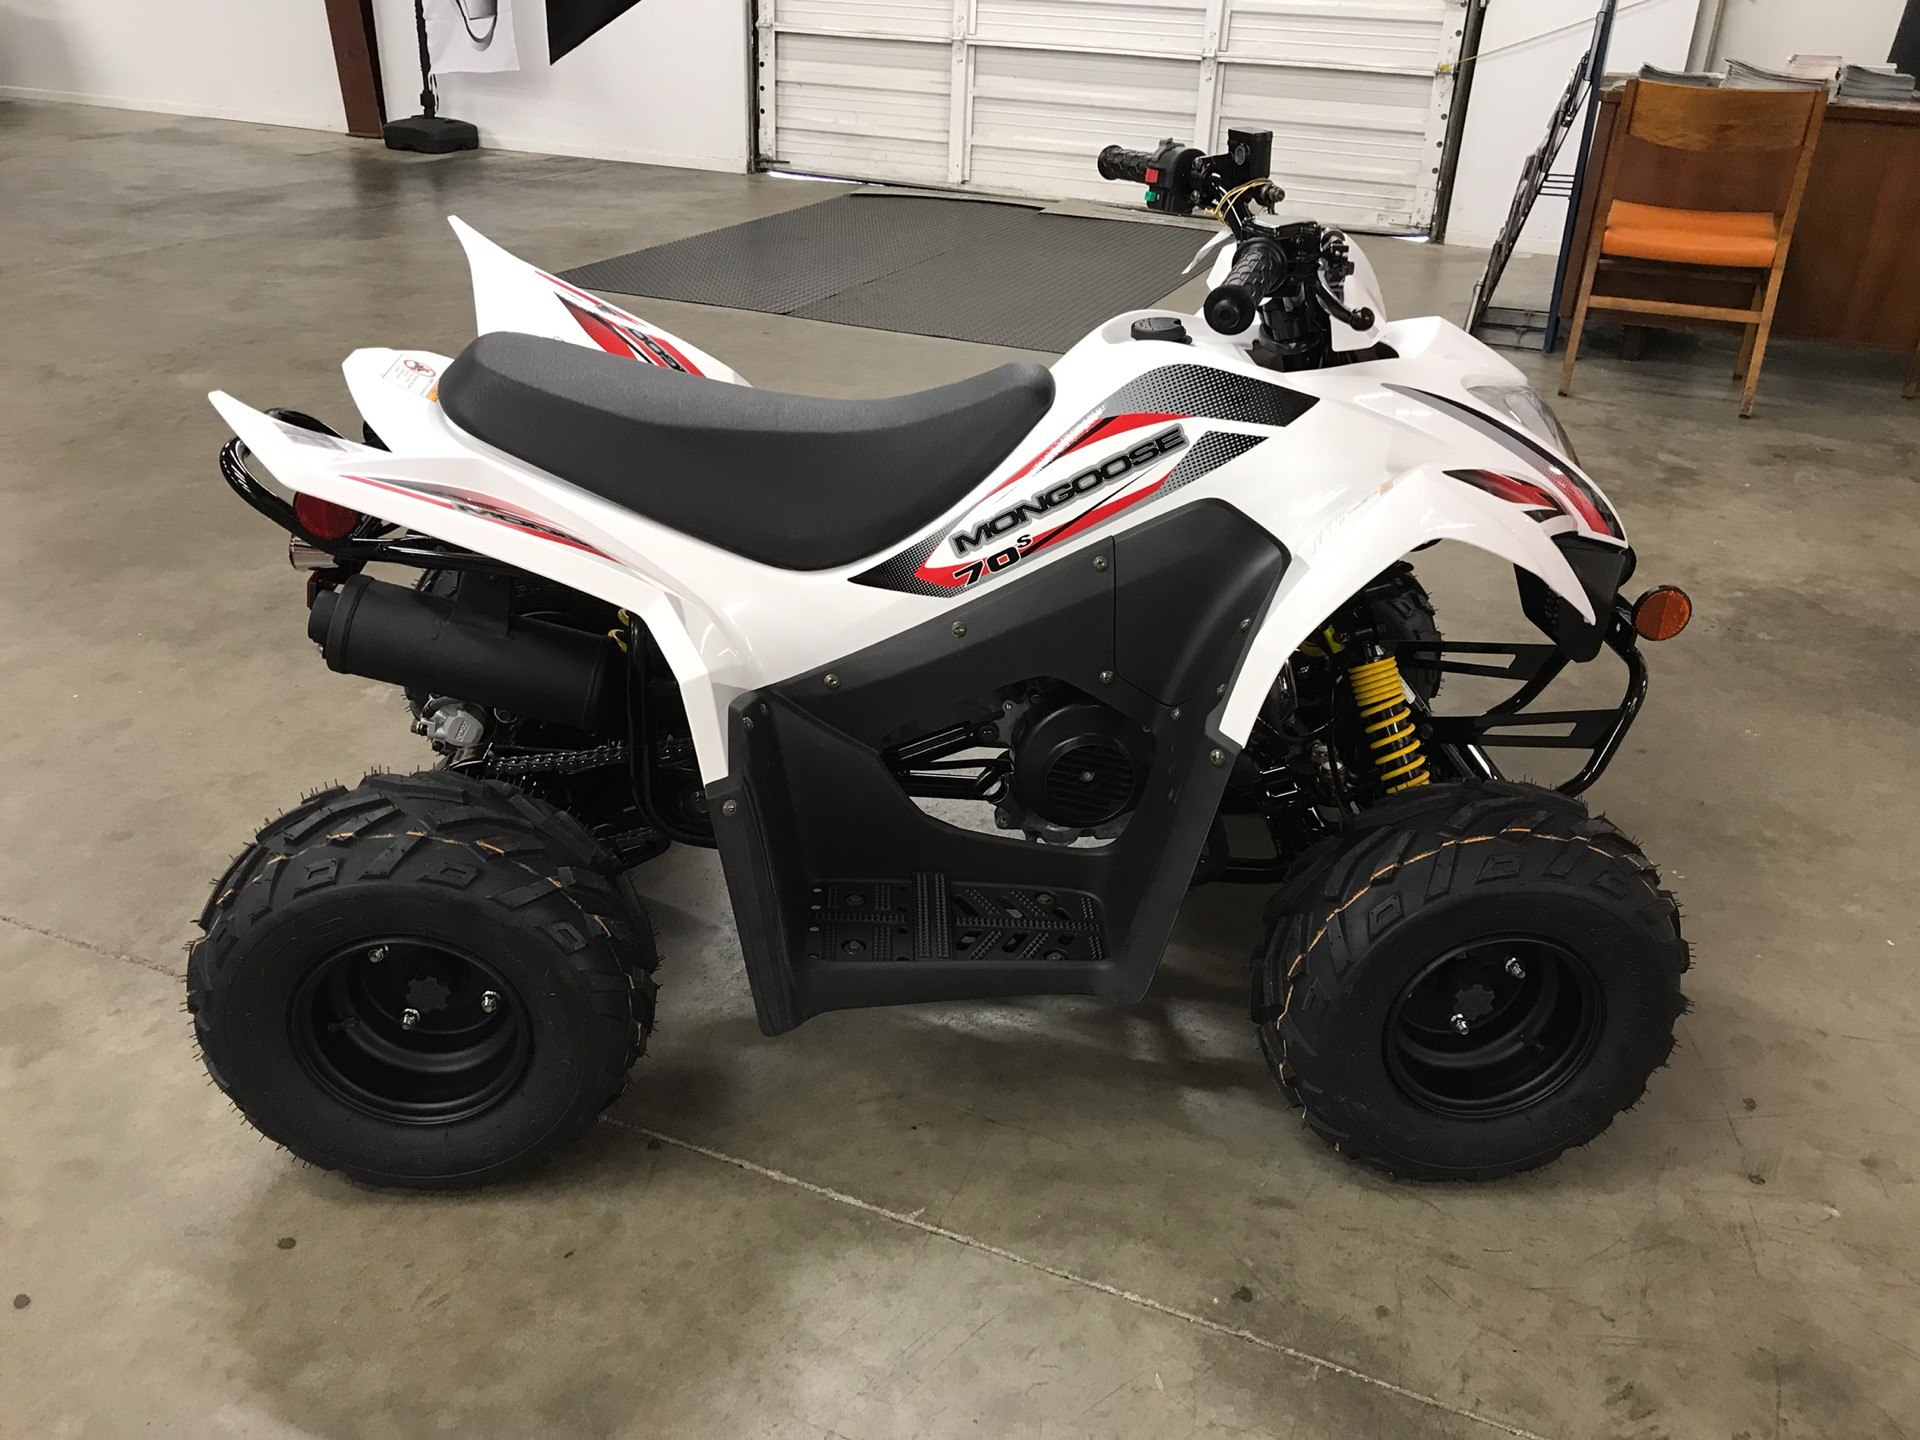 2019 Kymco Mongoose 70s in Sanford, North Carolina - Photo 1